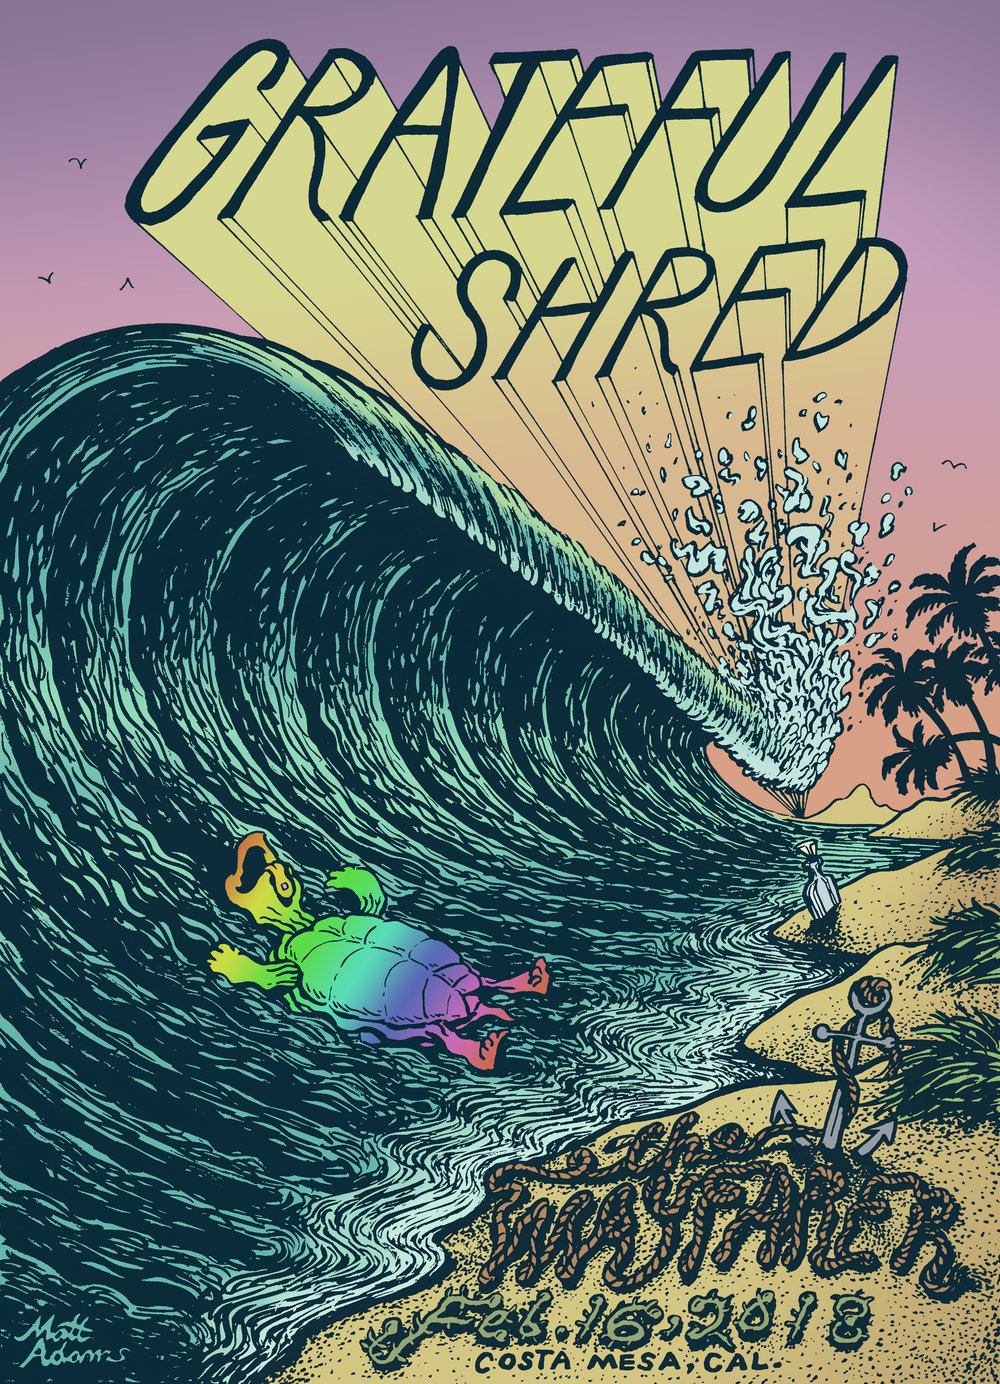 grateful shred OC.jpg